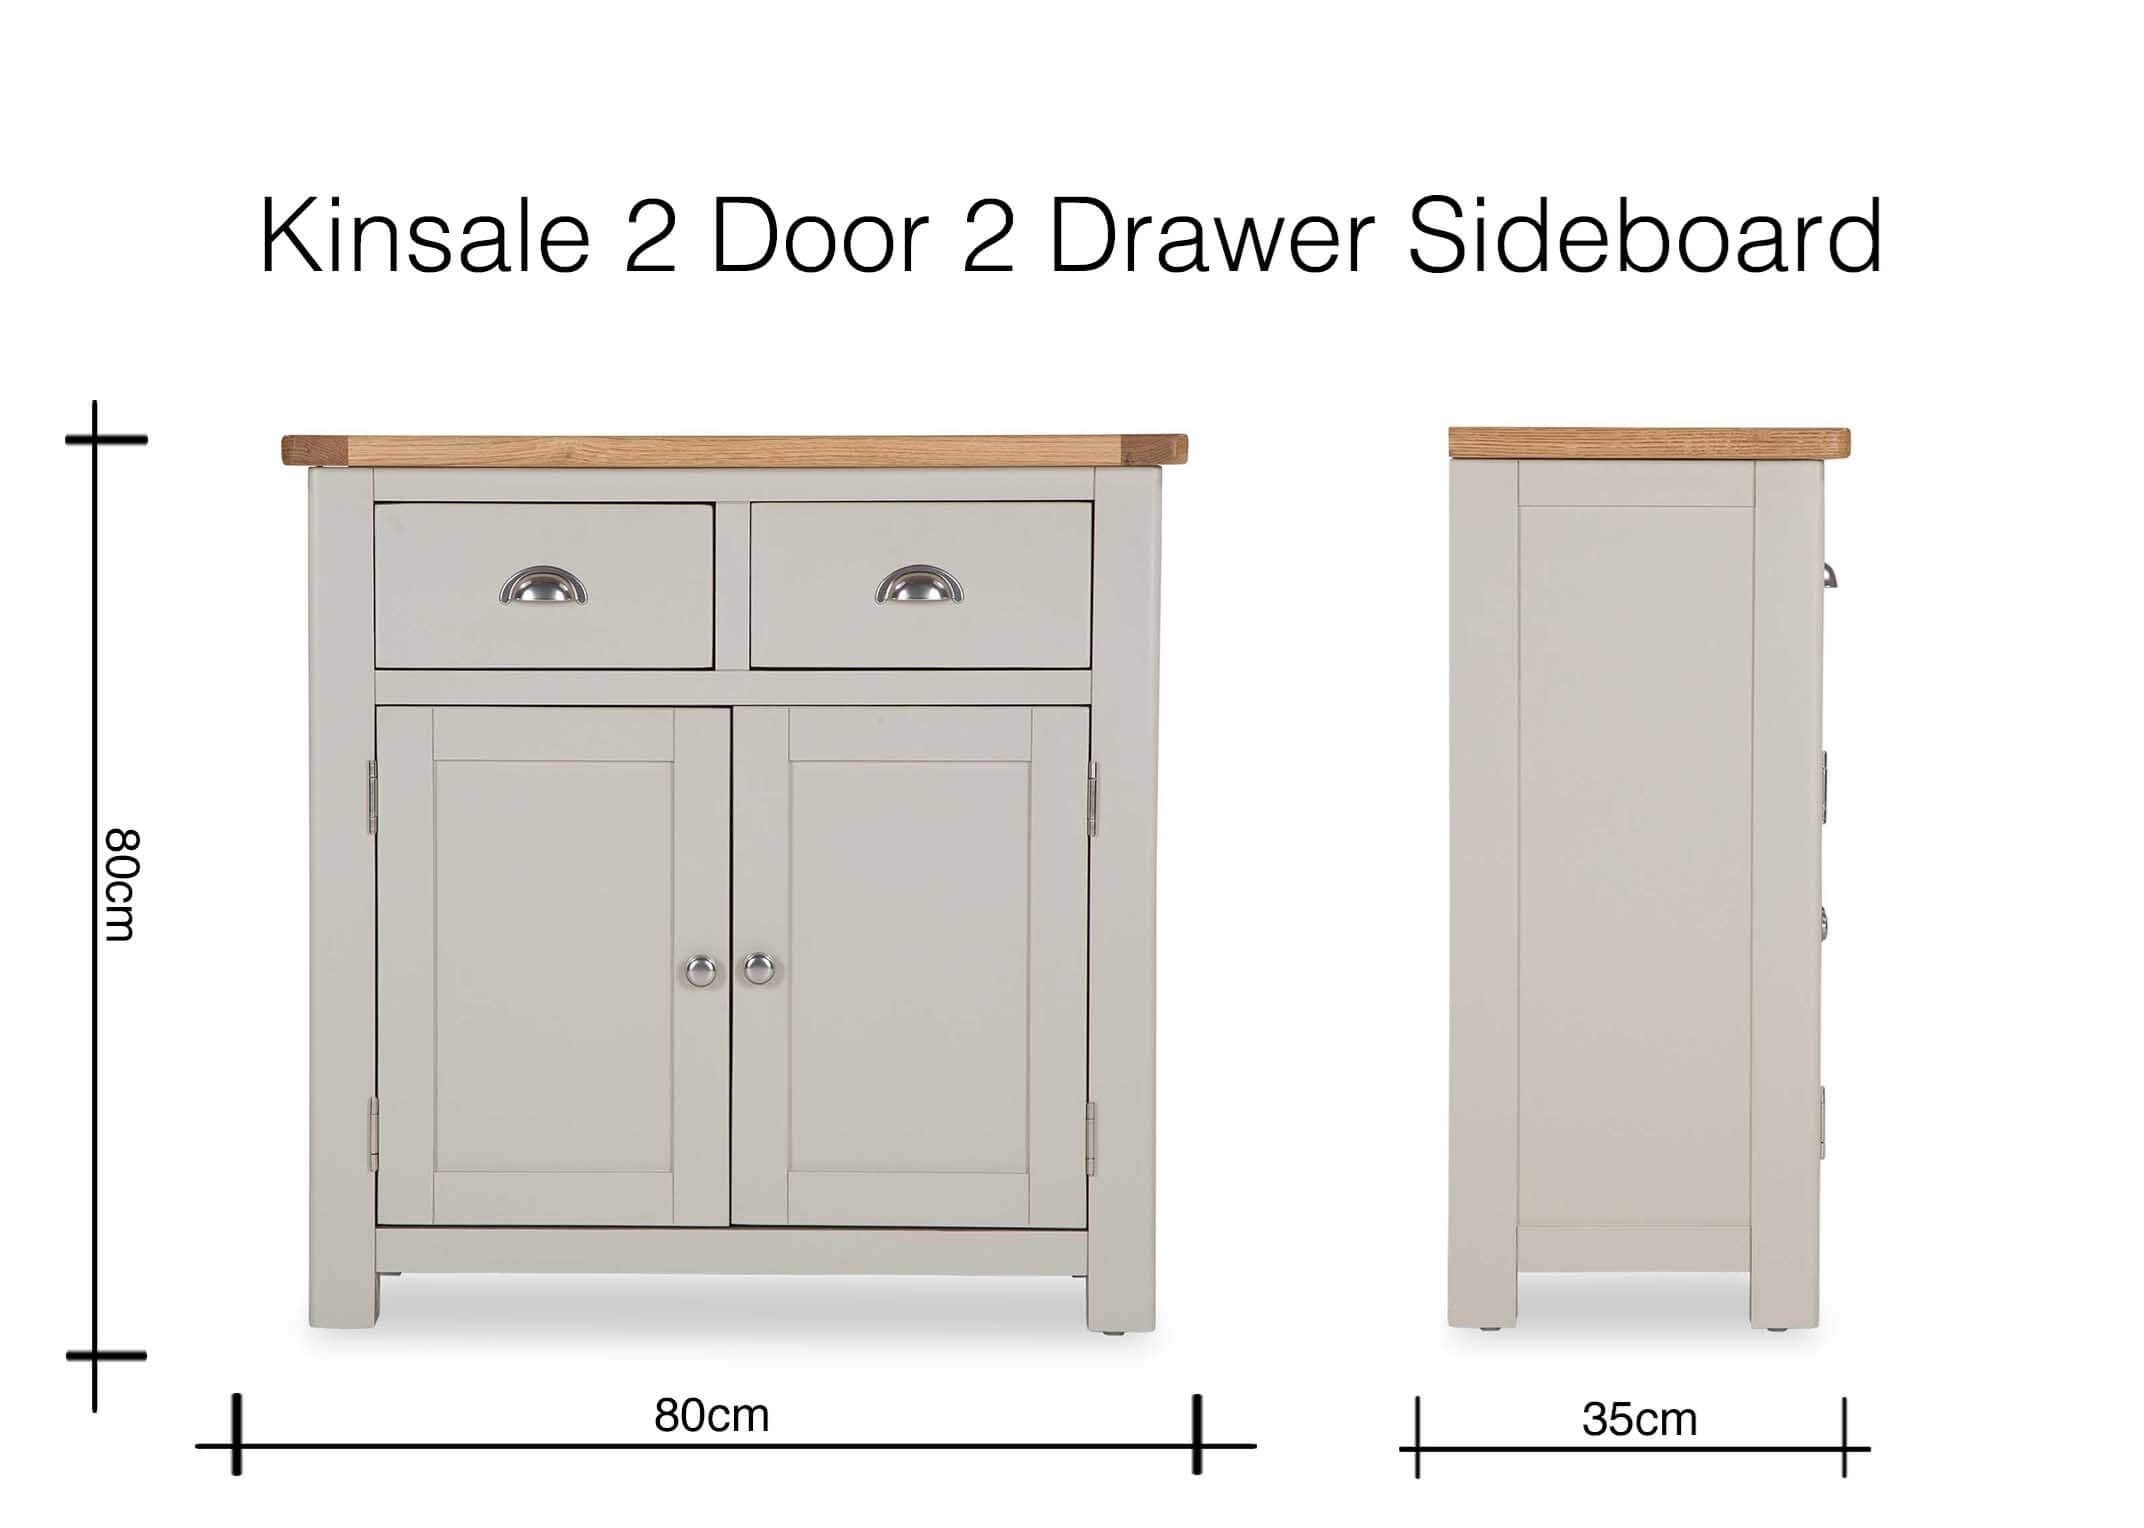 French Country Two-Tone Two Door Two Drawer Sideboard - Kinsale - Ez intended for 2-Door Mirror Front Sideboards (Image 12 of 30)